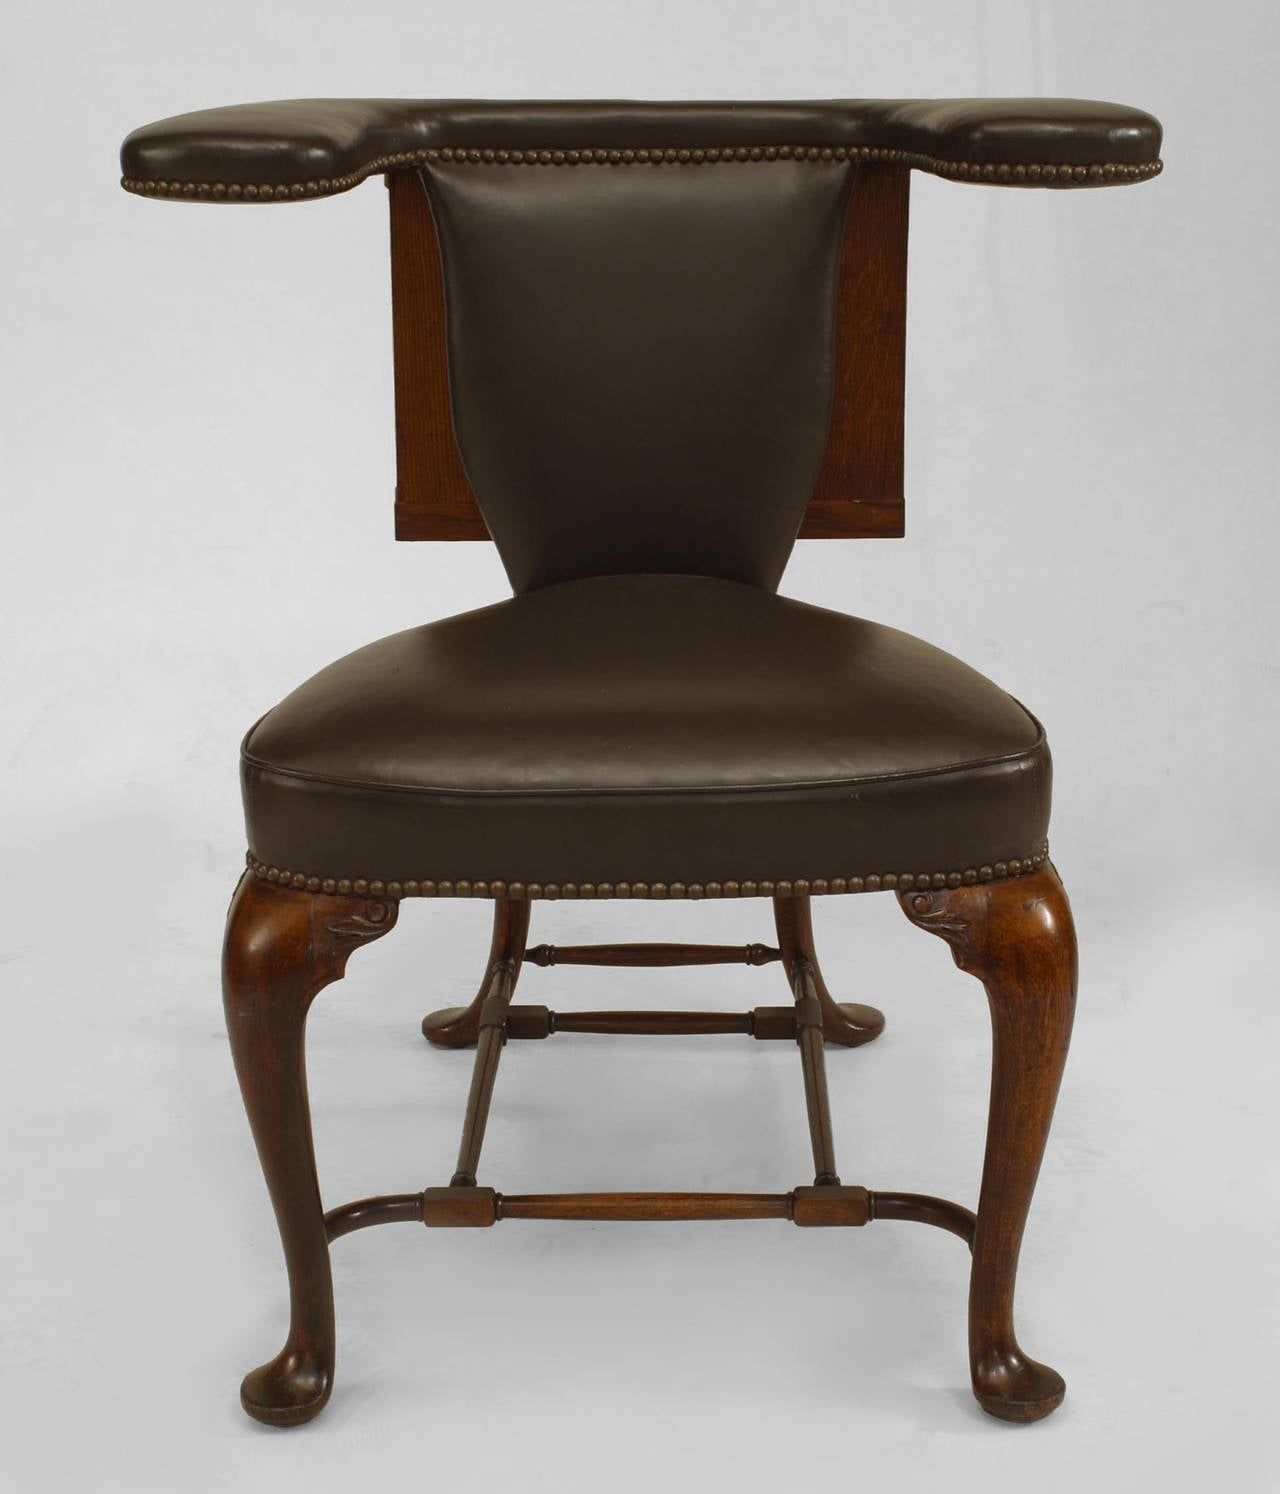 19th century english queen anne style leather upholstered